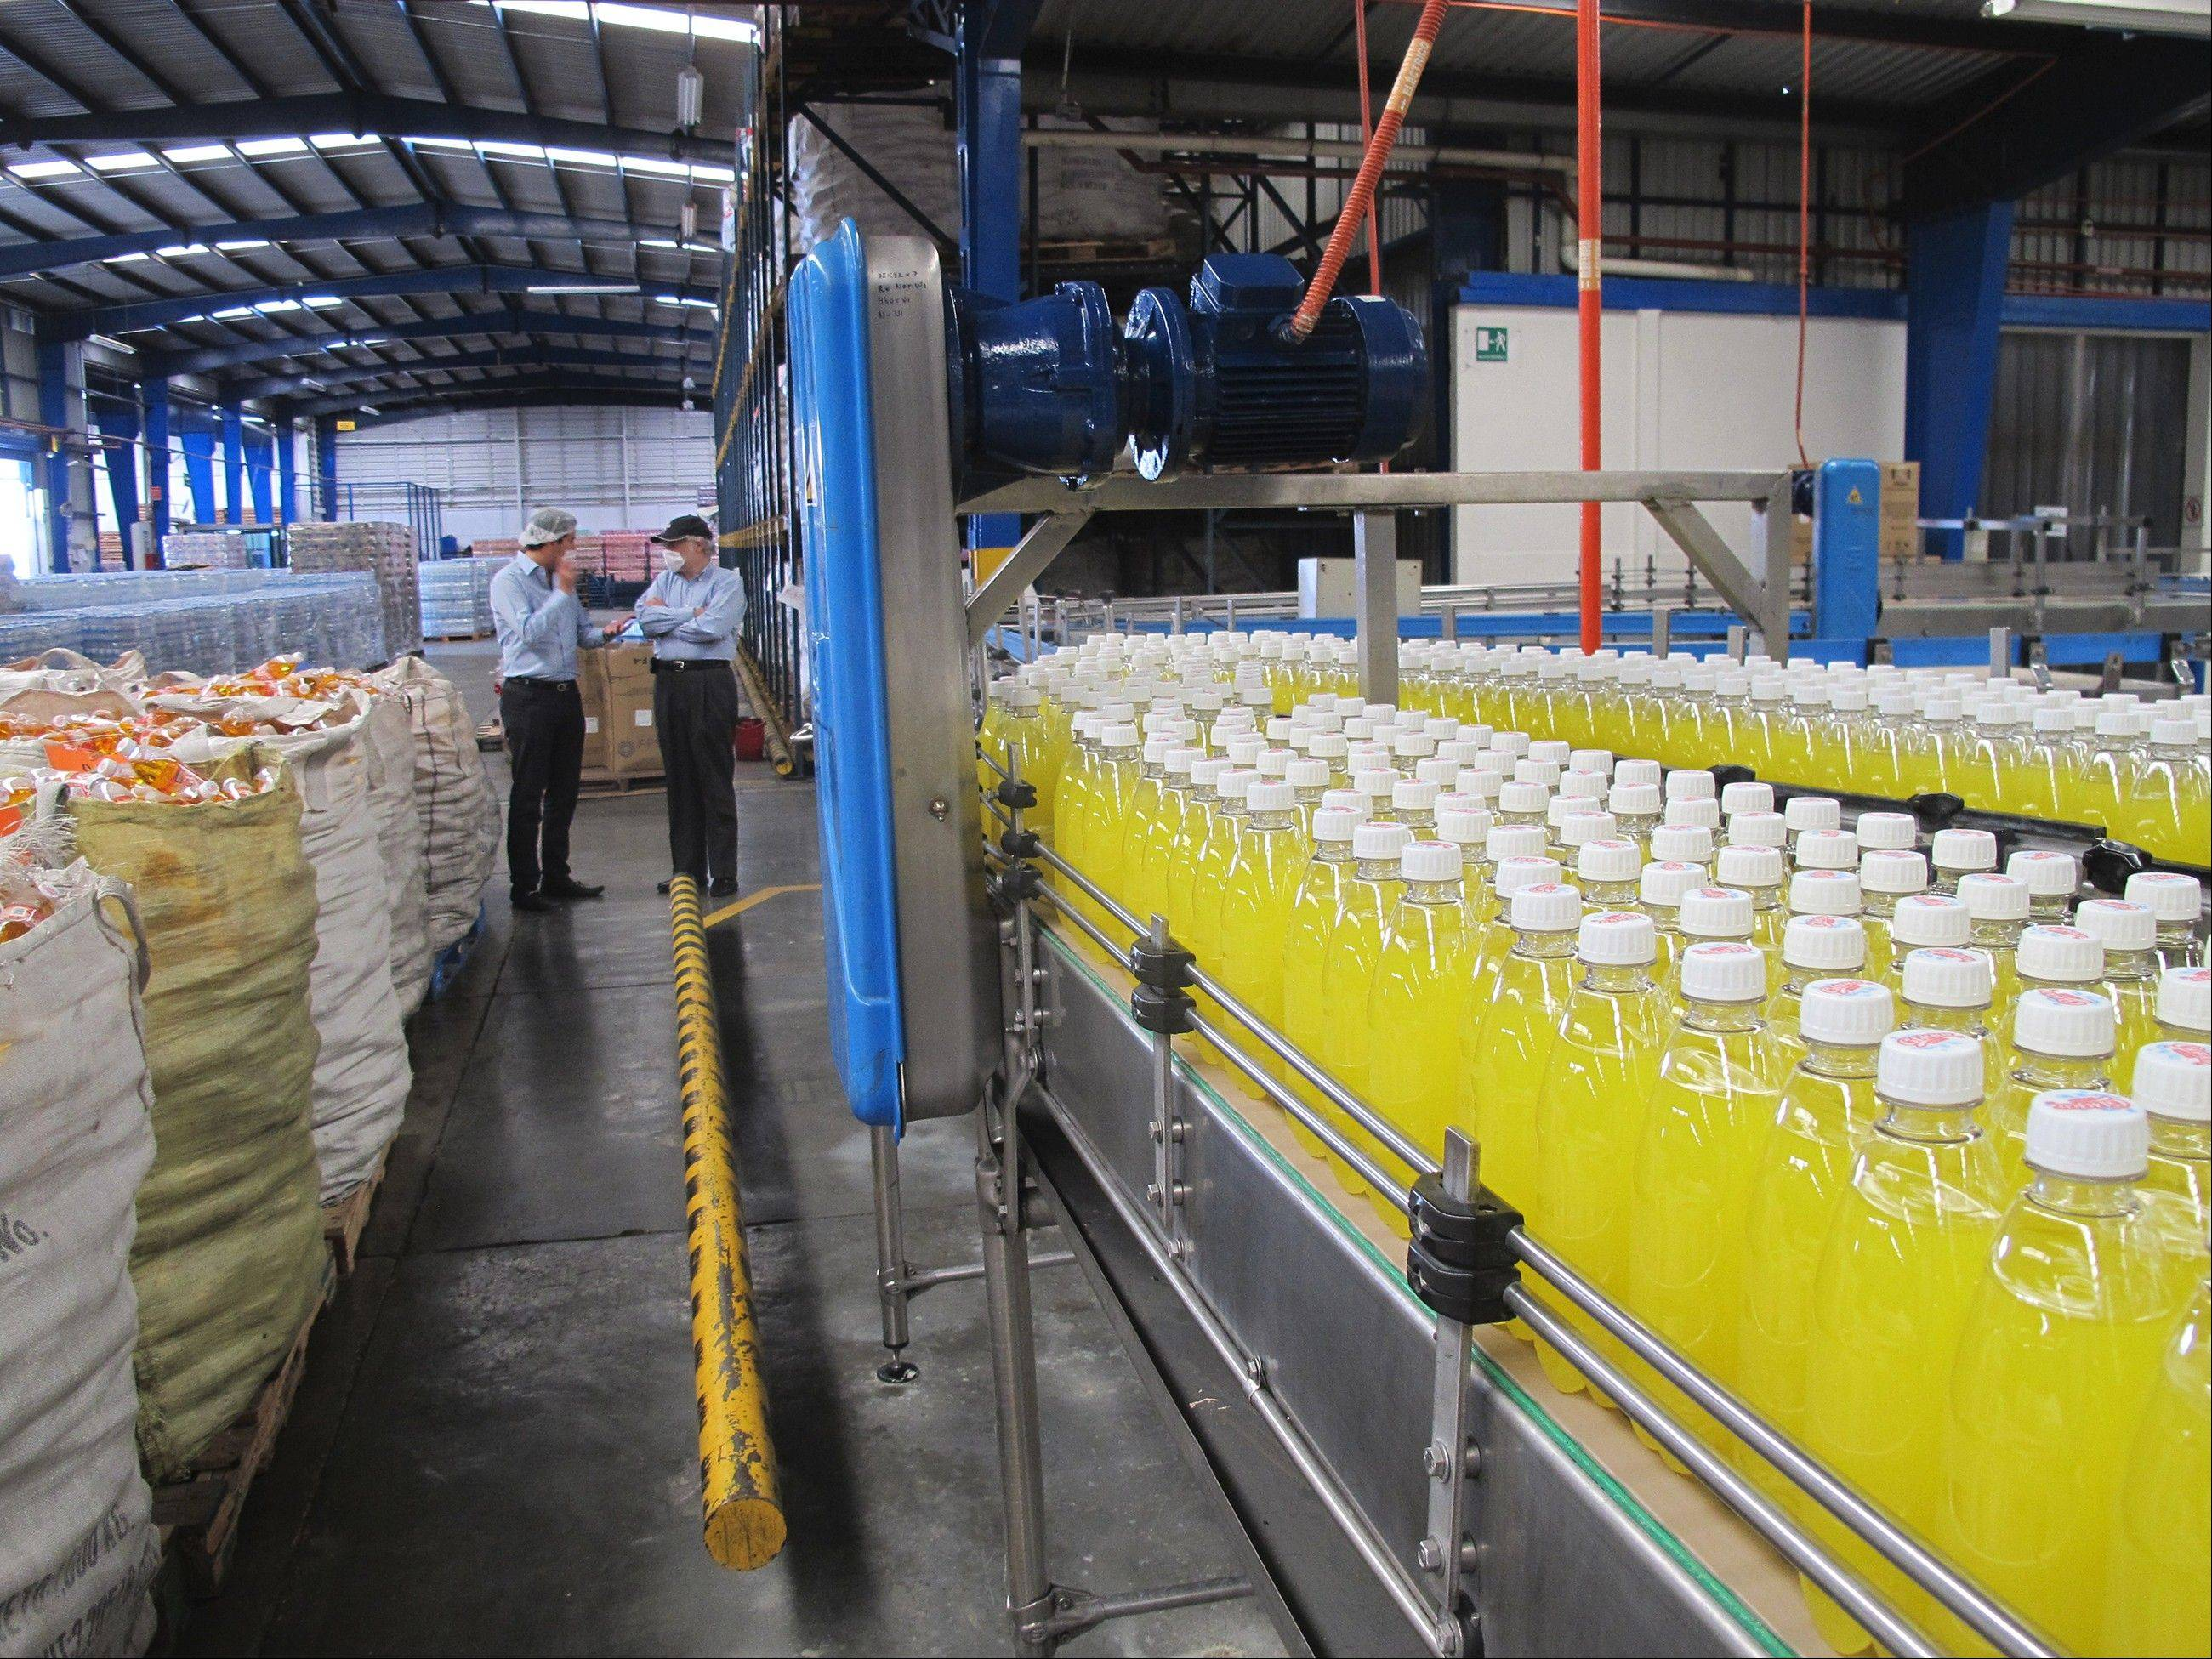 Gugar Soda�s Oaxaca factory produces several types of drinks, including these pineapple sodas. Mexico is the world�s top consumer of soft drinks at 163 liters per capita a year, 40 percent more than the U.S.